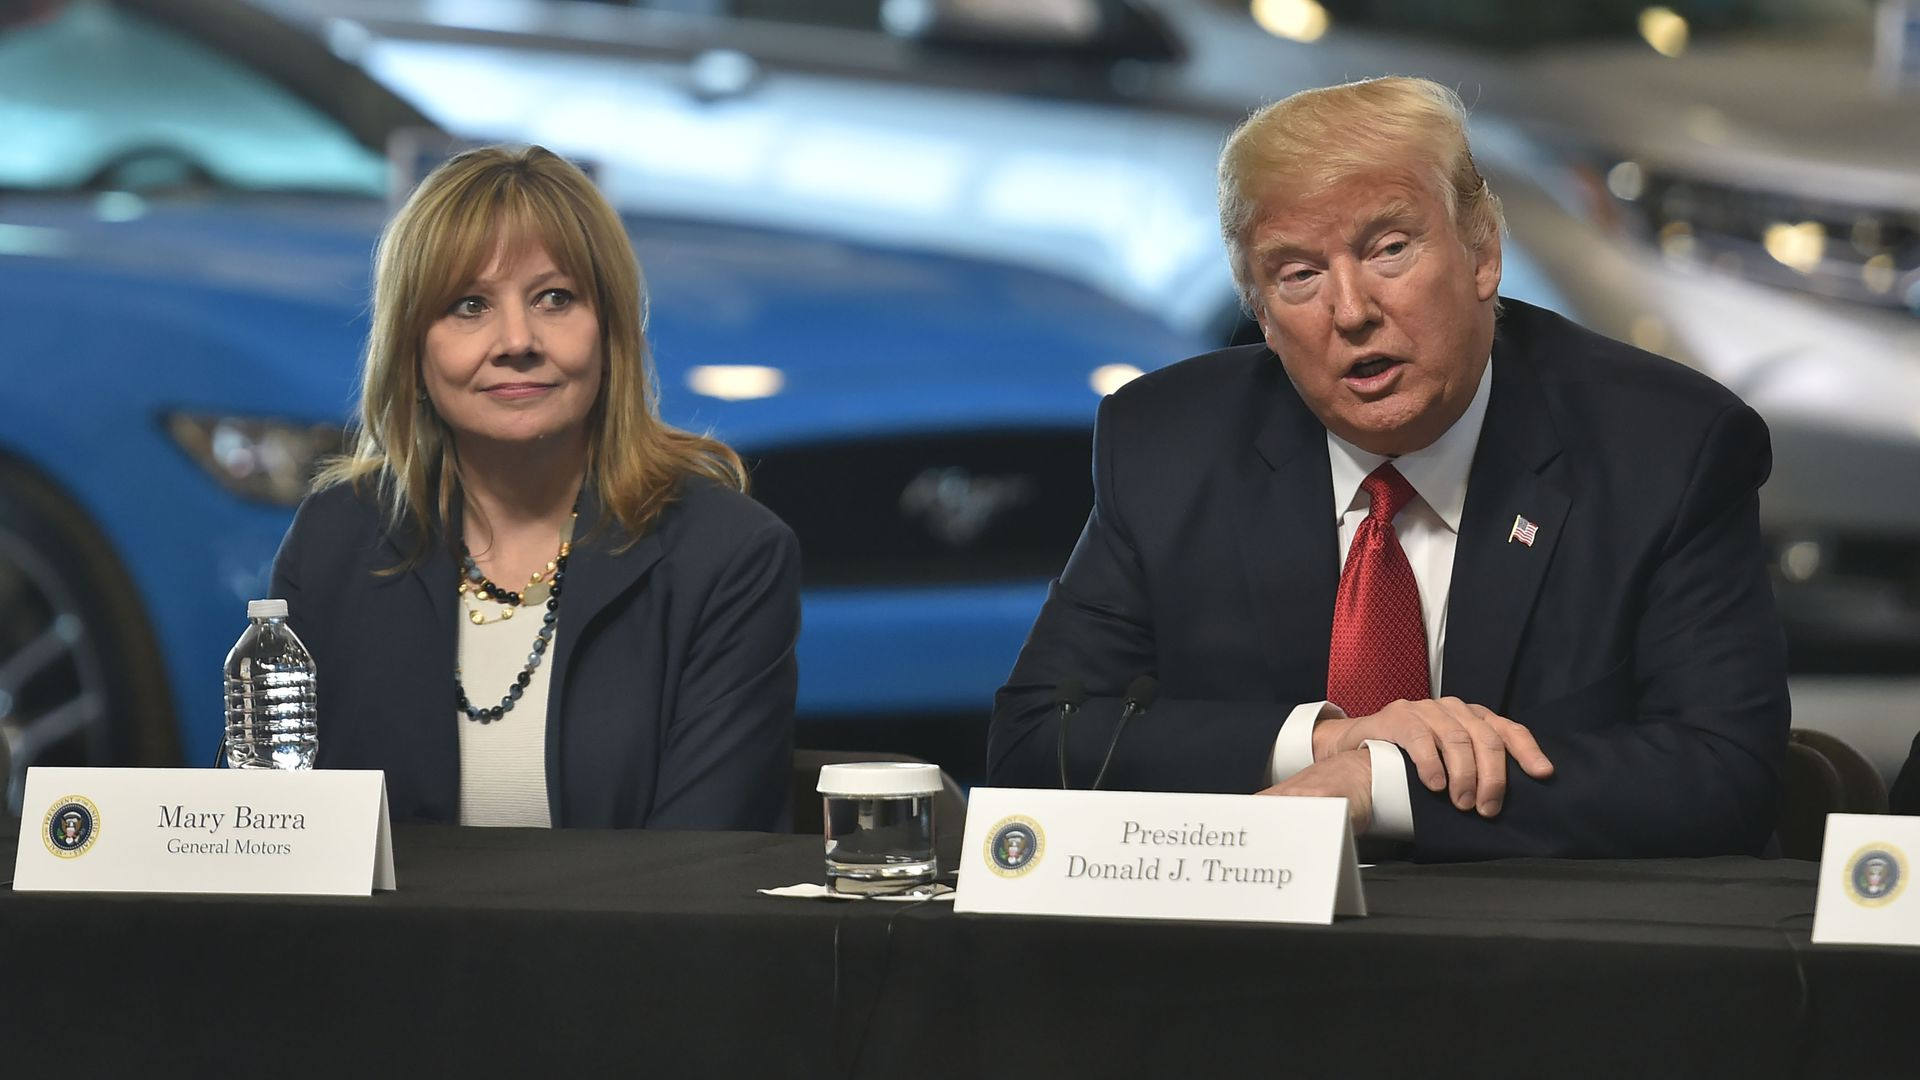 President Trump with GM CEO Mary Barra in 2017 at a auto factory